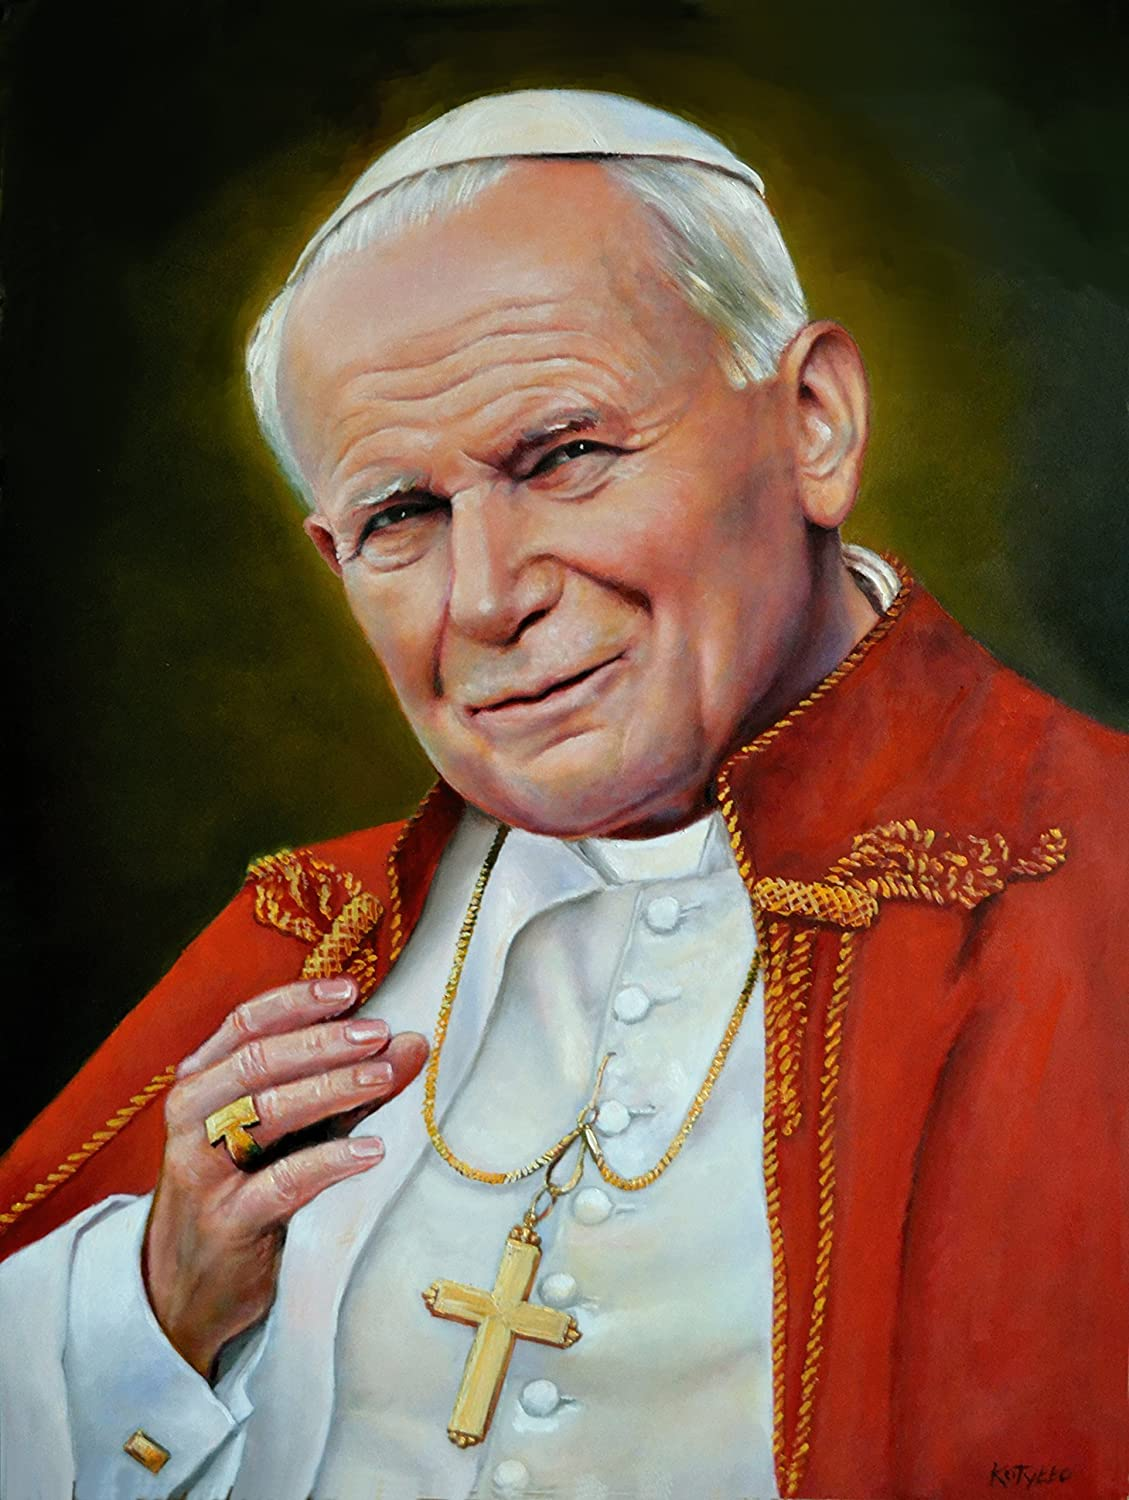 Amazon Com Pope John Paul Ii Poster Picture Print A3 Catholic Religious Oil Portrait Paintings Christian Holy Wall Art Decor For Home Room Chapel Handmade